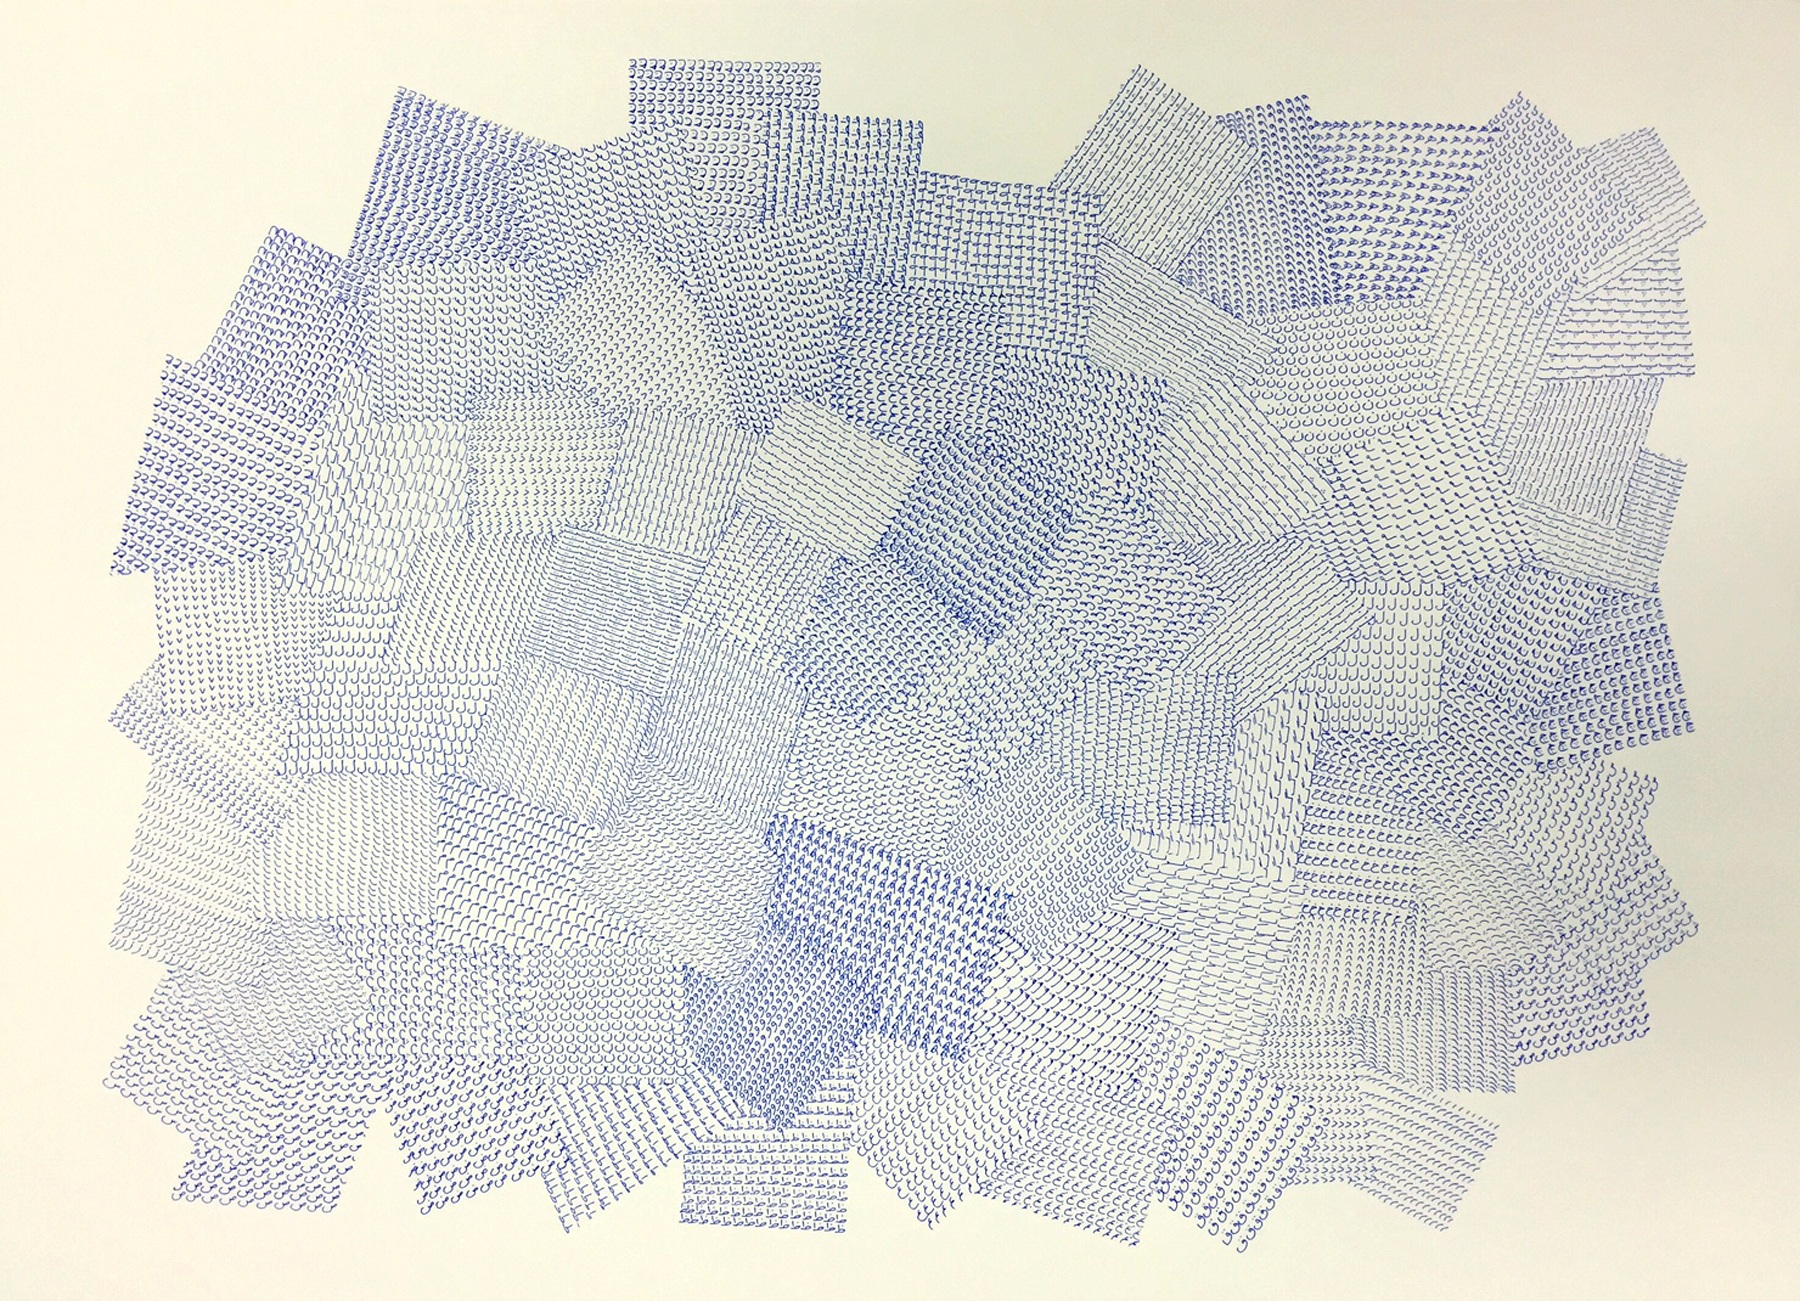 "Thirty two I, 2015   Pen on Bristol paper, 22"" x 30"""